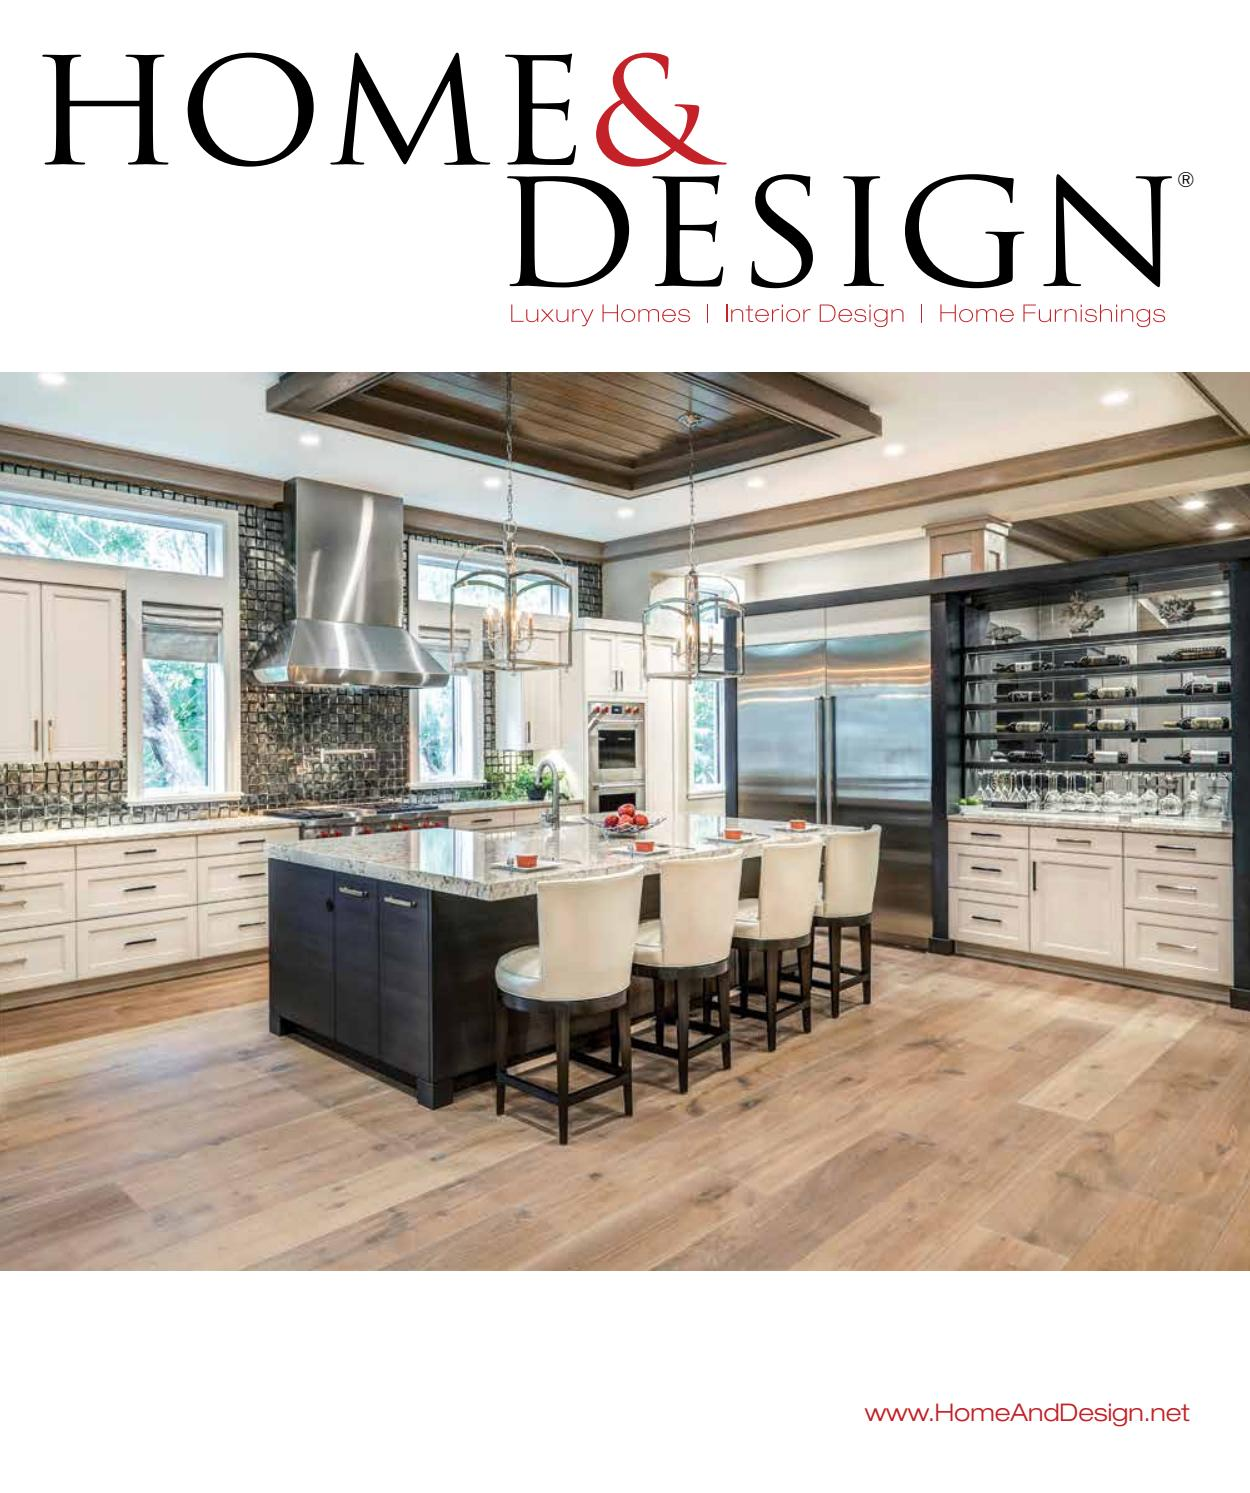 Home Design Magazine 2016 Suncoast Florida Edition By Anthony Spano